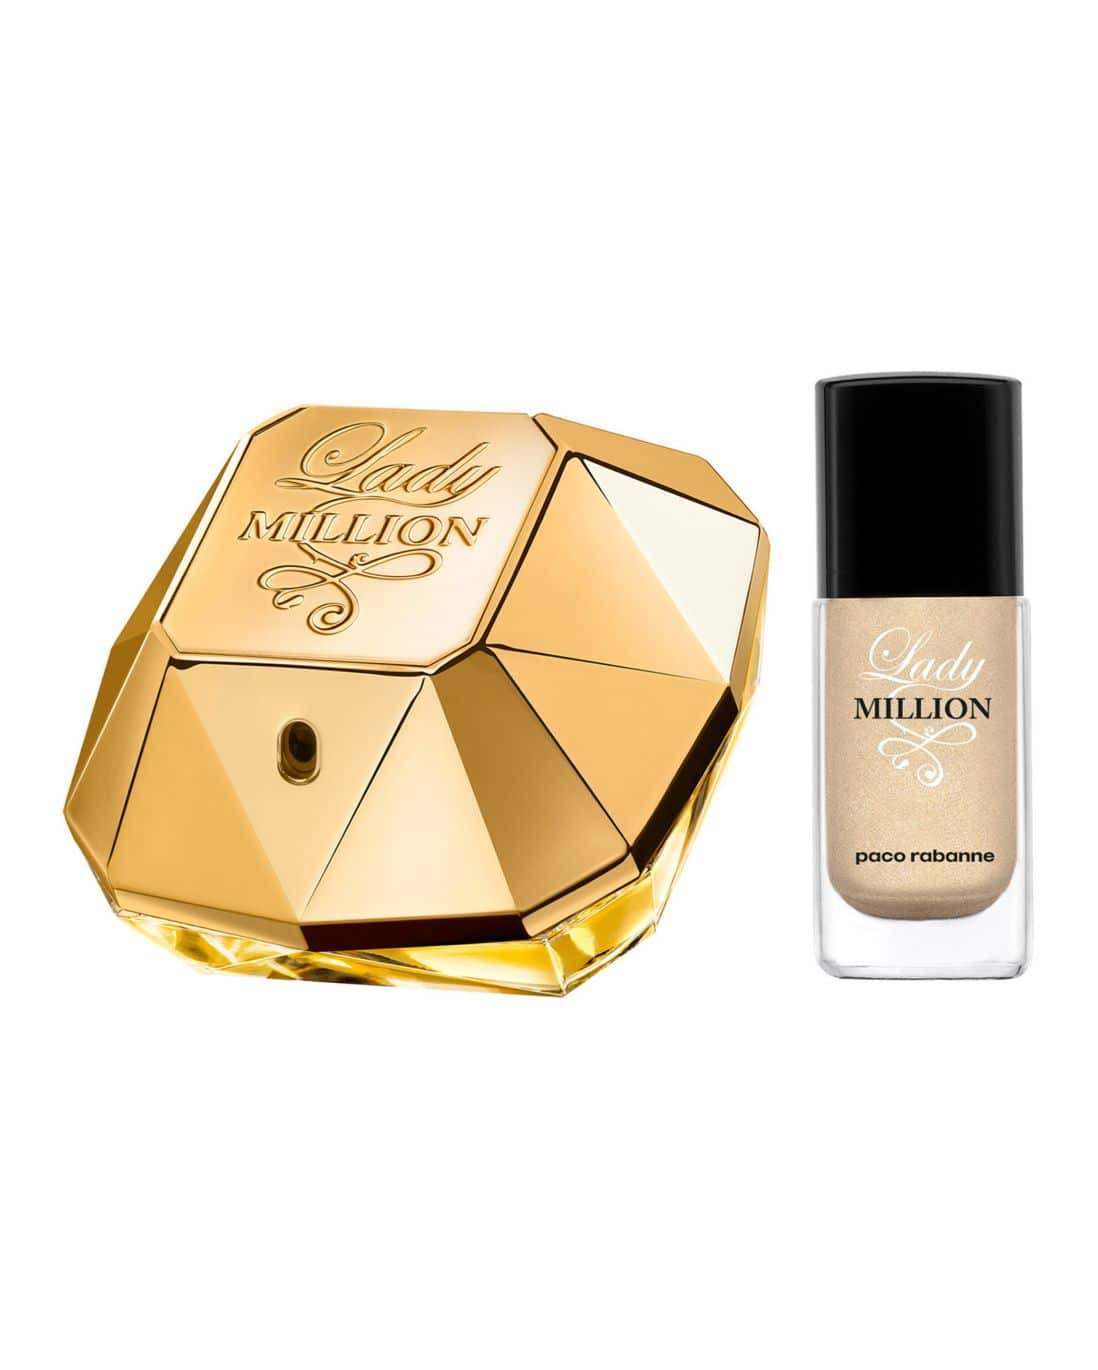 Kit Perfume Lady Million Paco Rabanne Feminino Eau de Parfum 50ml + Esmalte